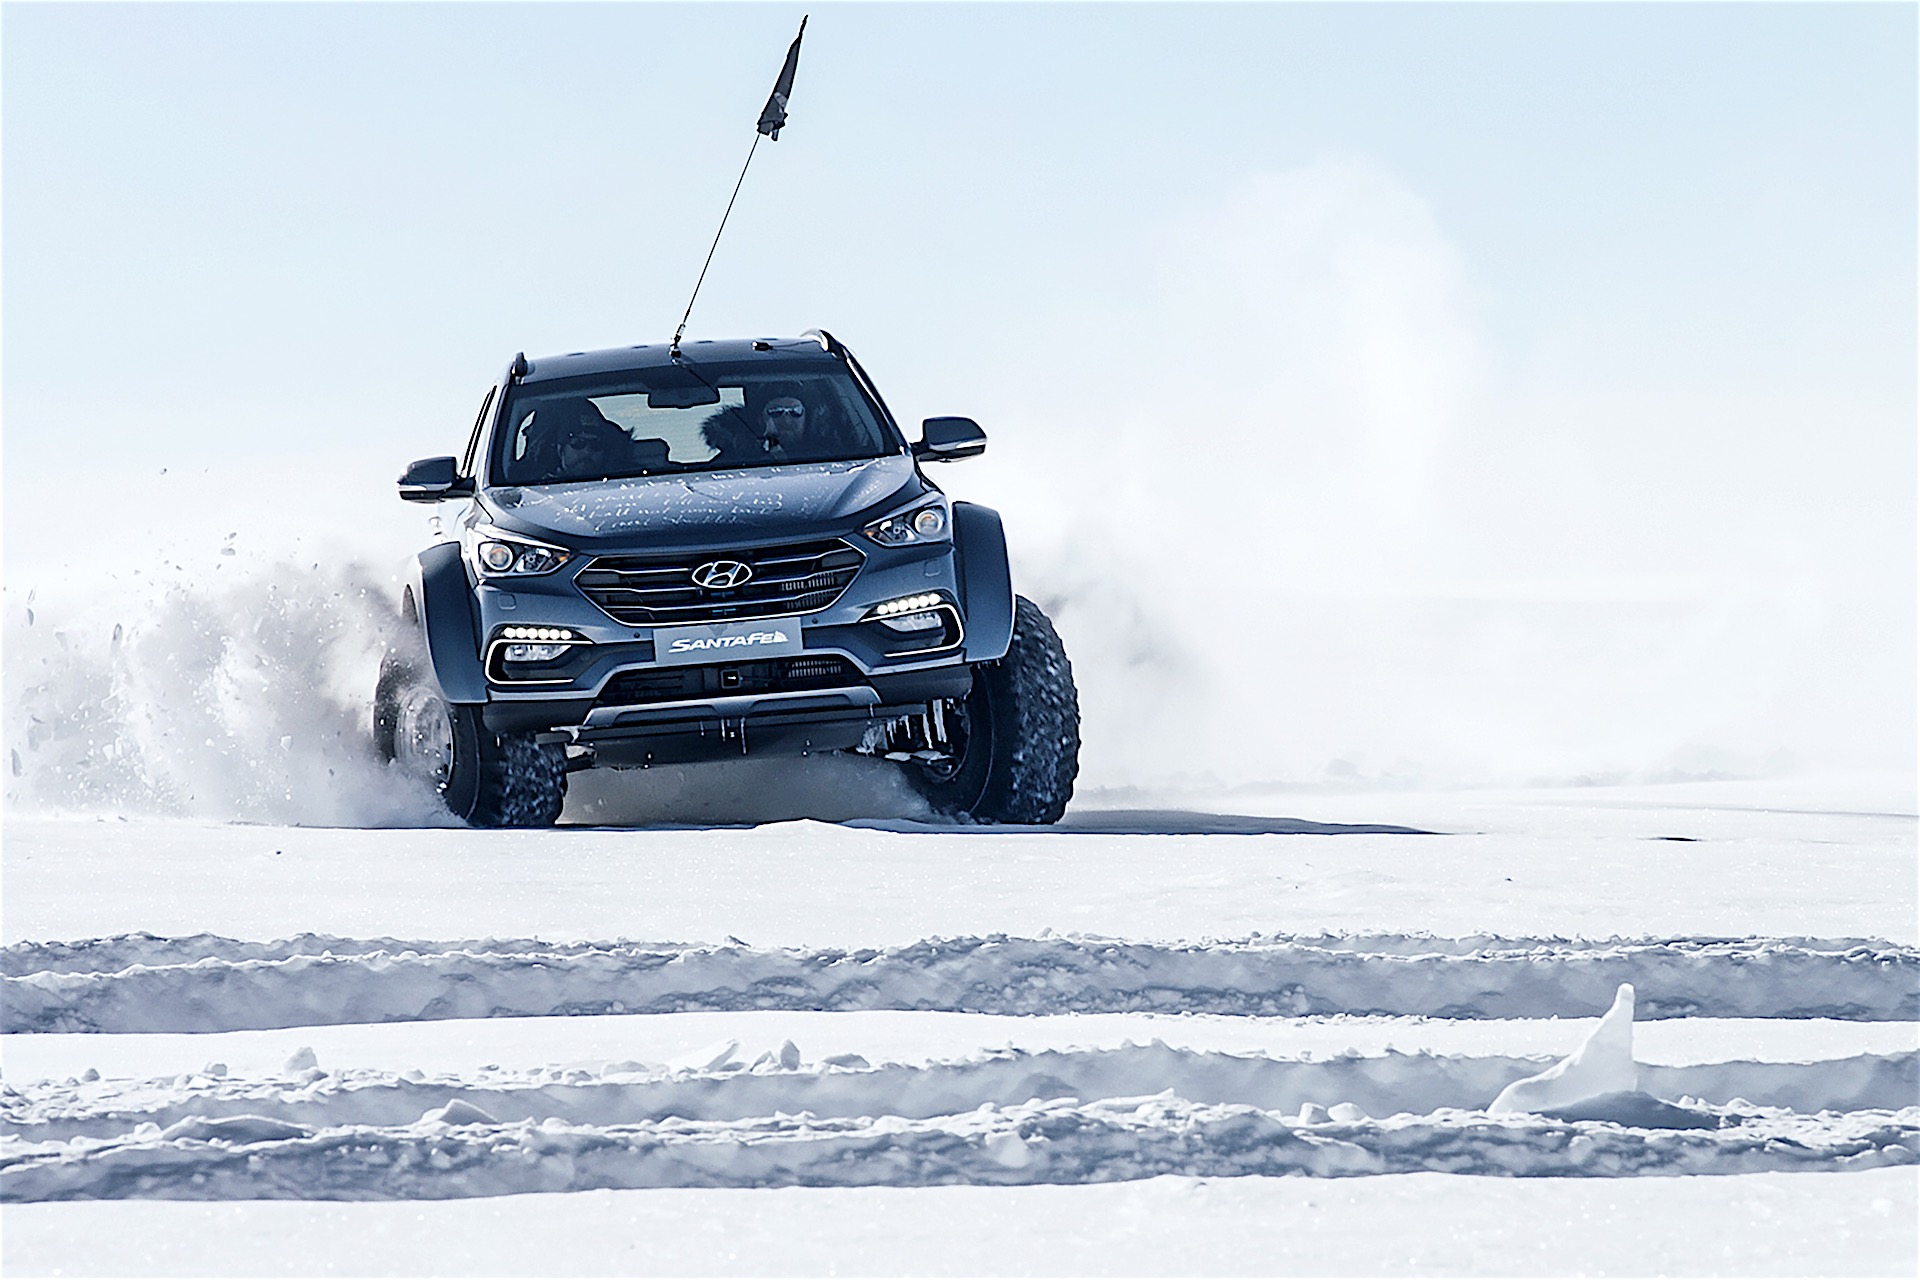 Hyundai expedition celebrates Shackleton centenary